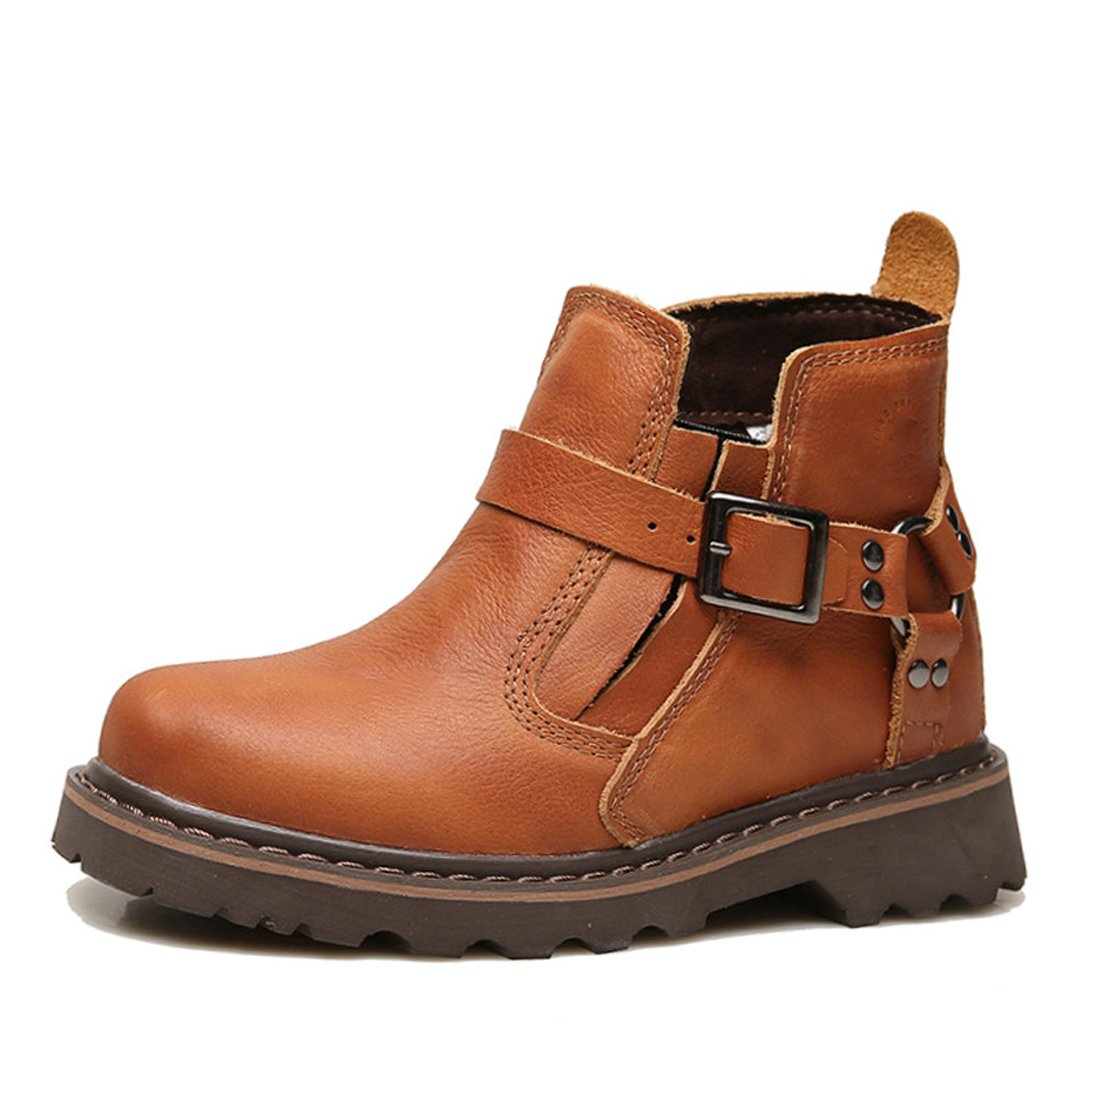 Z.SUO Men Women Unisex Couple Leather Two Wear Fashion Boot B076DL9GLM US W:7|Red Brown